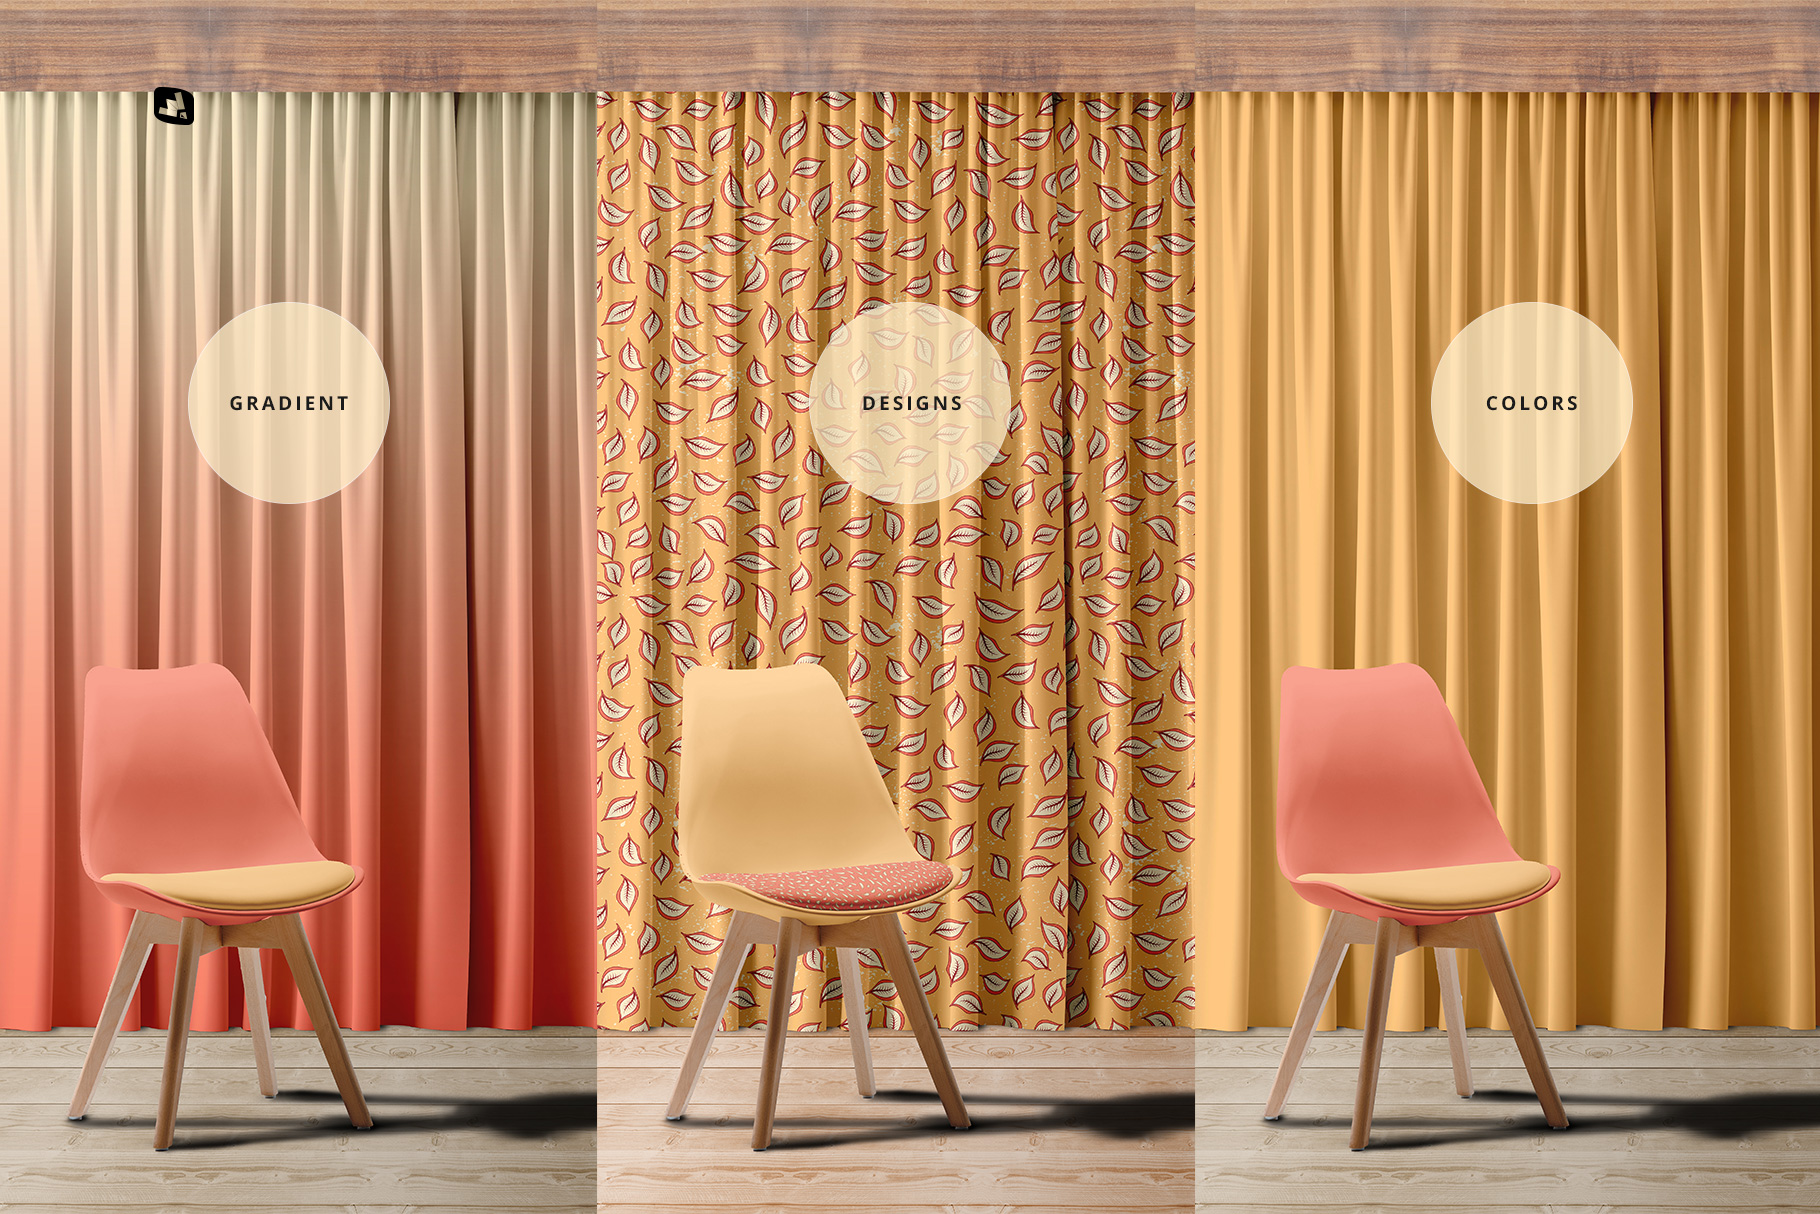 types of the long curtain with chair mockup